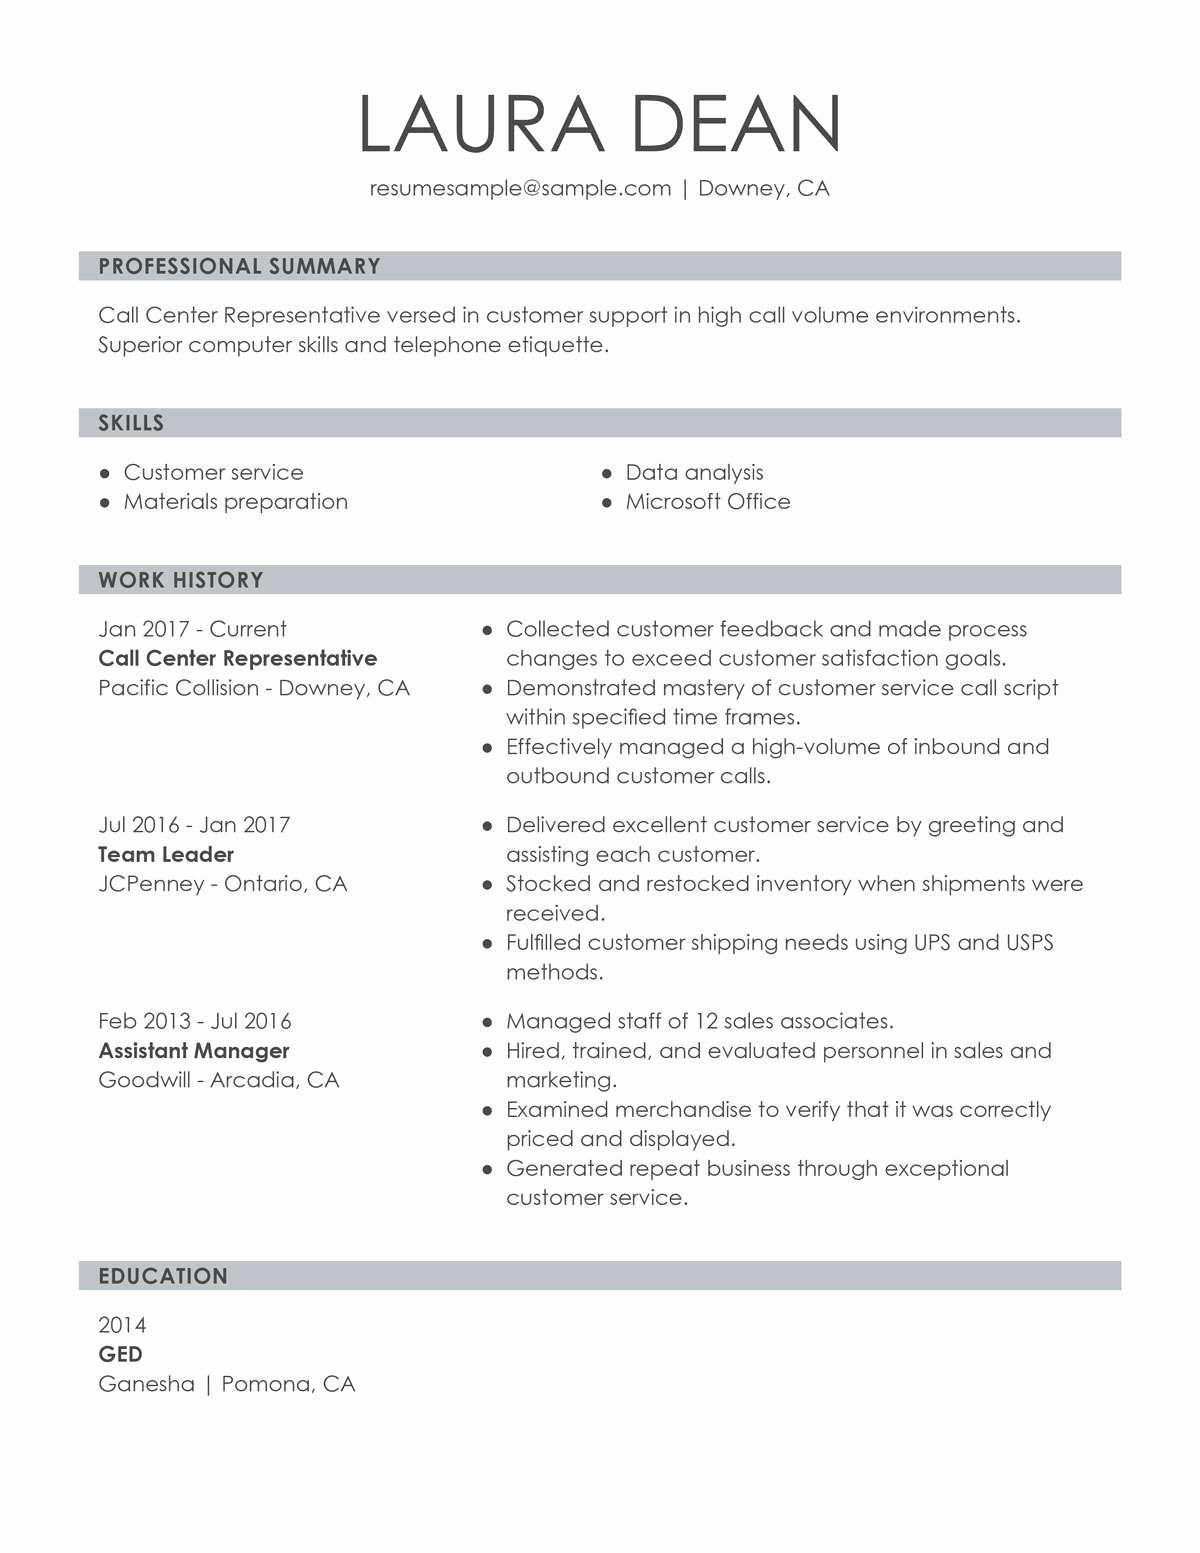 001 Incredible Customer Service Resume Template Sample  CvFull